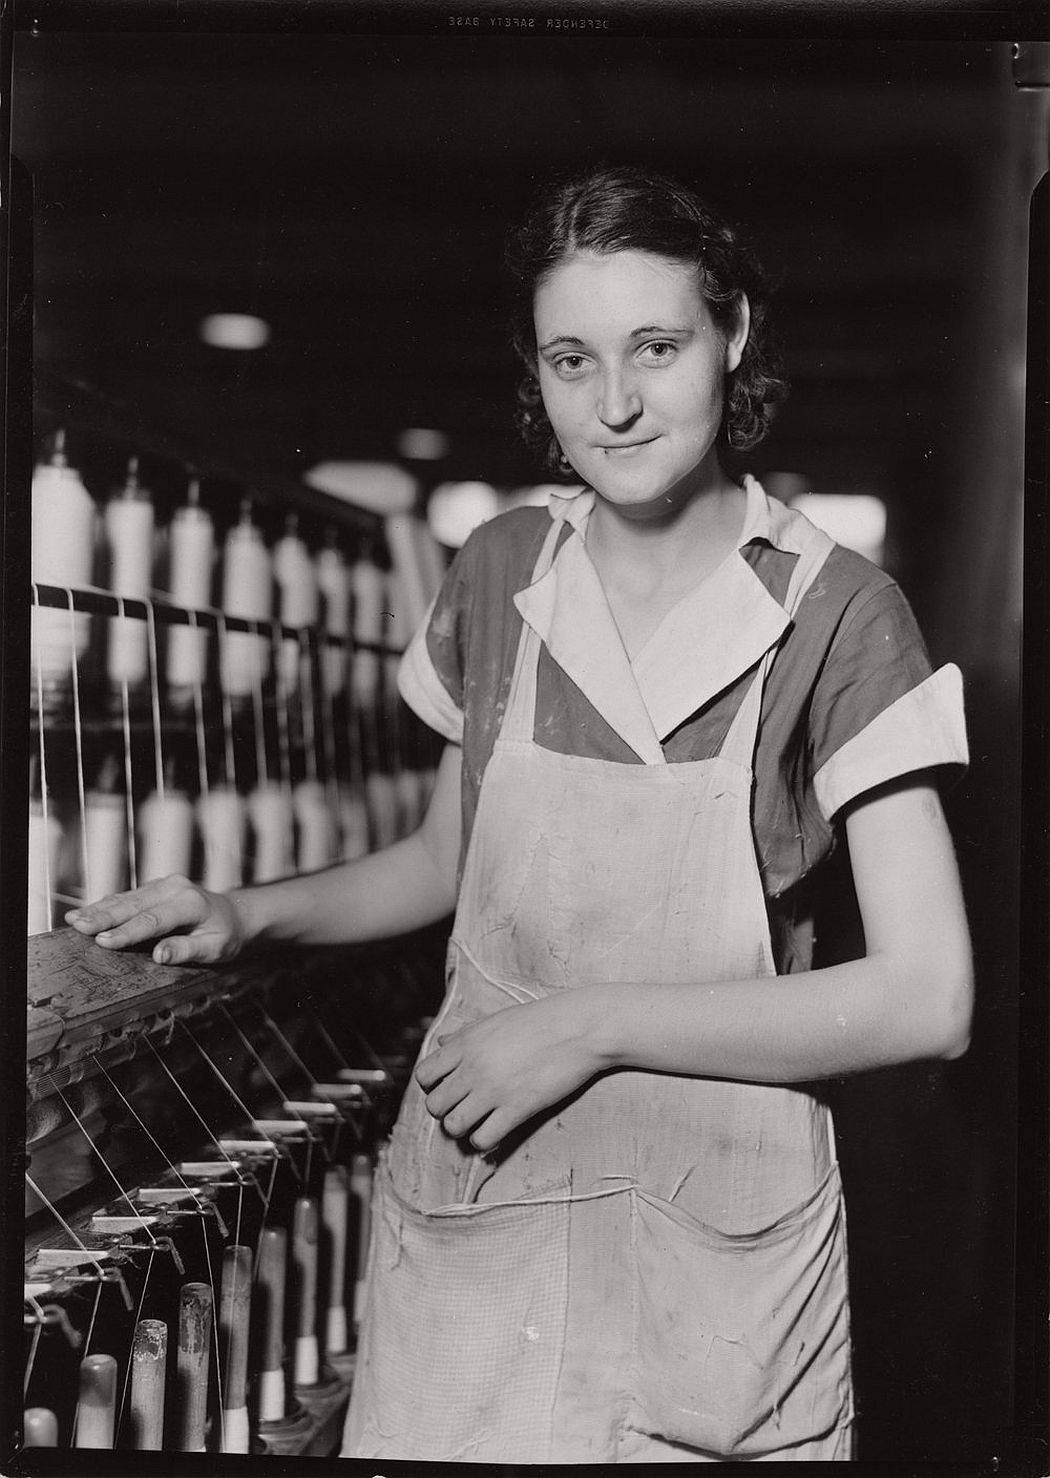 lewis-hine-the-national-research-project-1936-1937-05